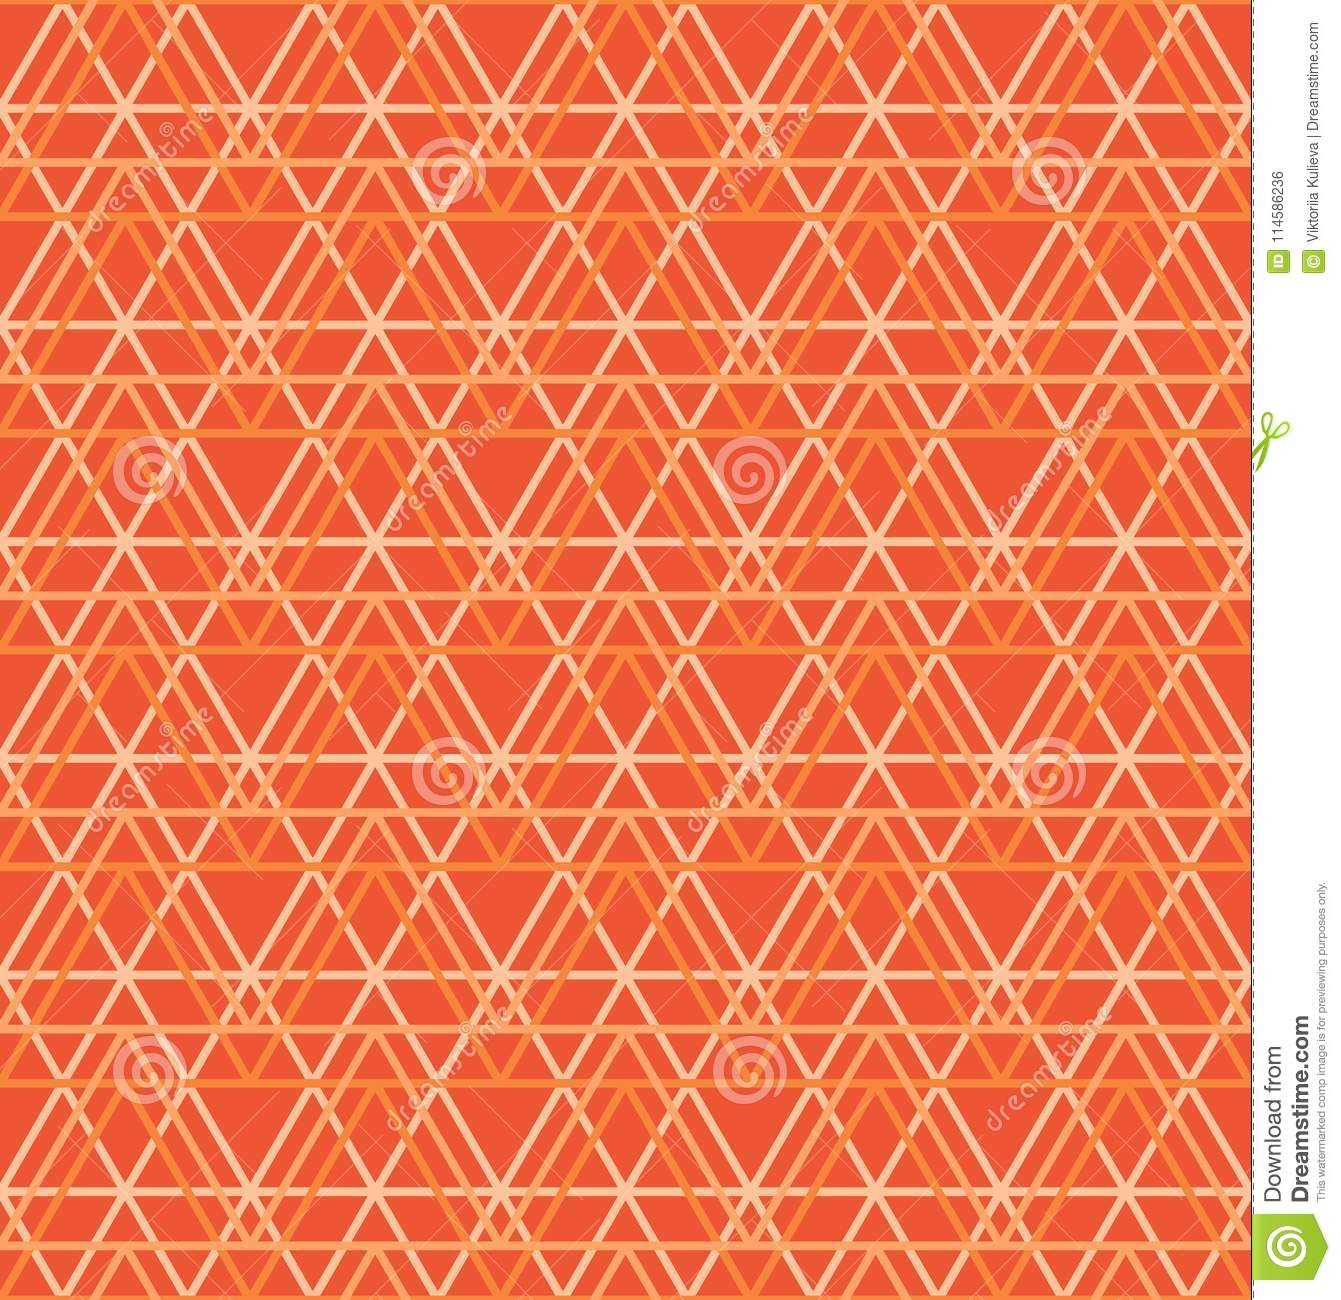 seamless abstract geometric pattern orange triange background vector universal wallpaper seamless abstract geometric pattern 114586236